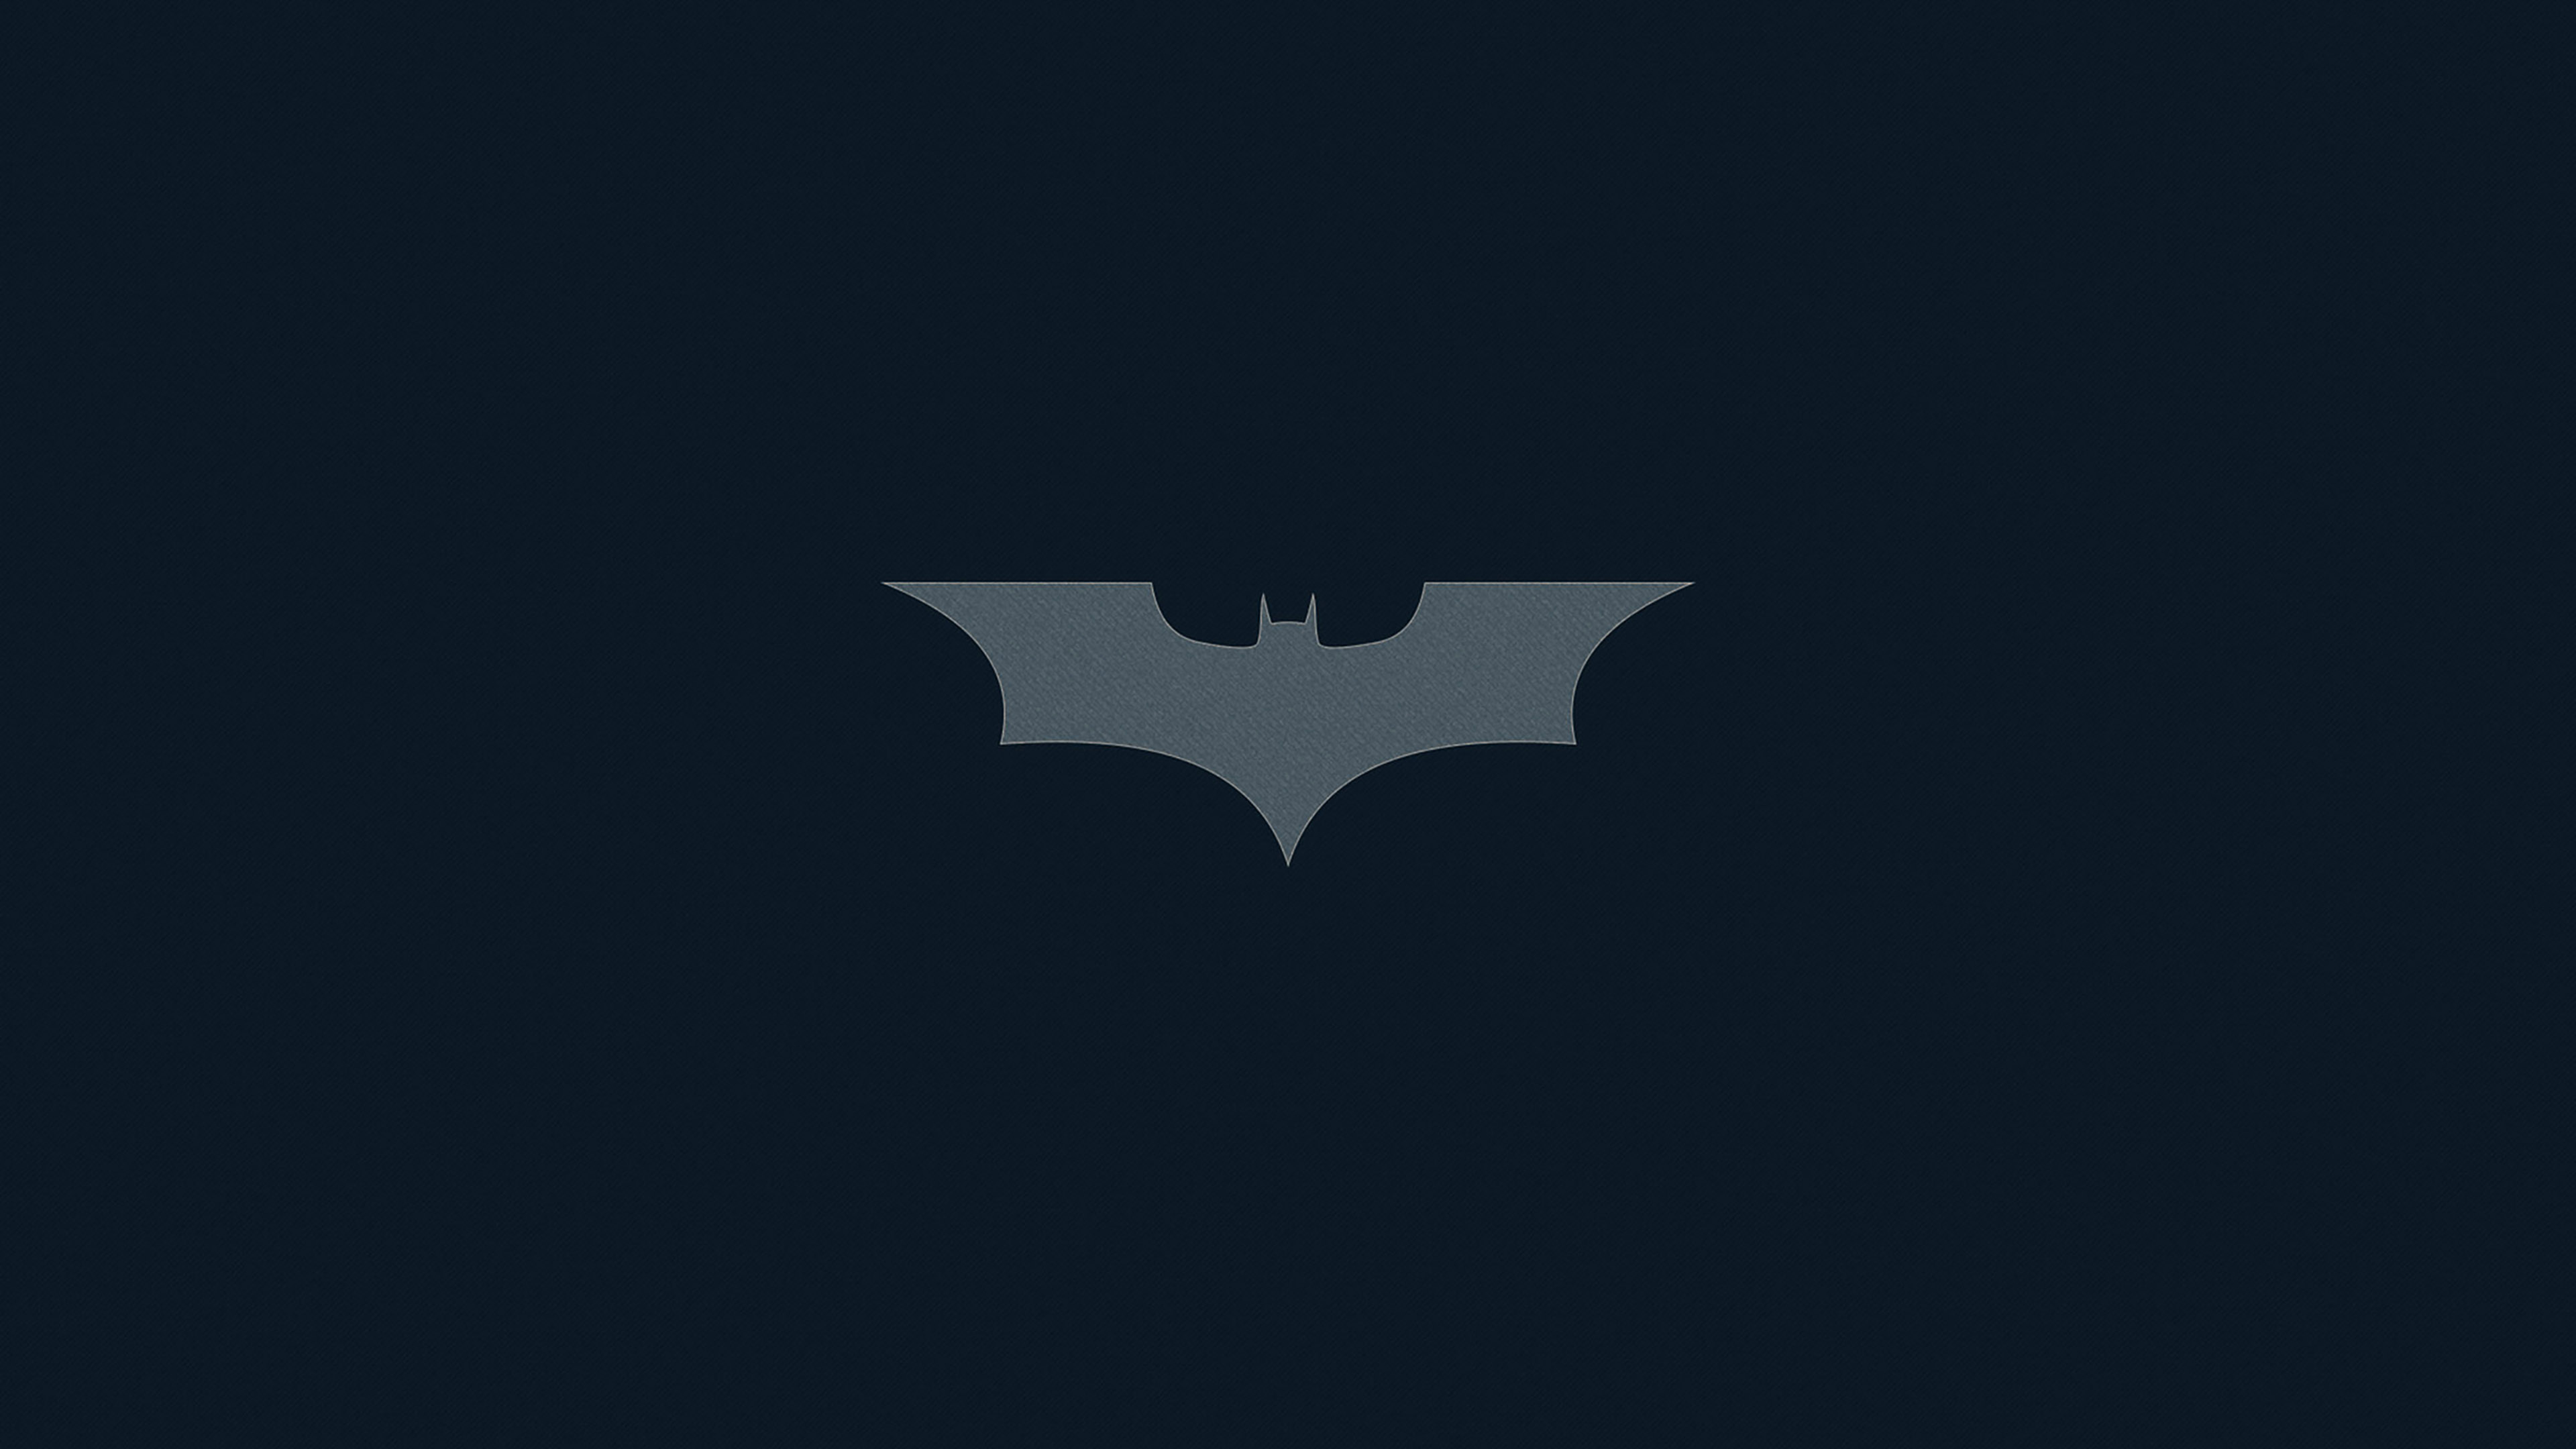 Cute Wallpapers Gold White Ab25 Wallpaper The Dark Knight Navy Batman Hero Papers Co